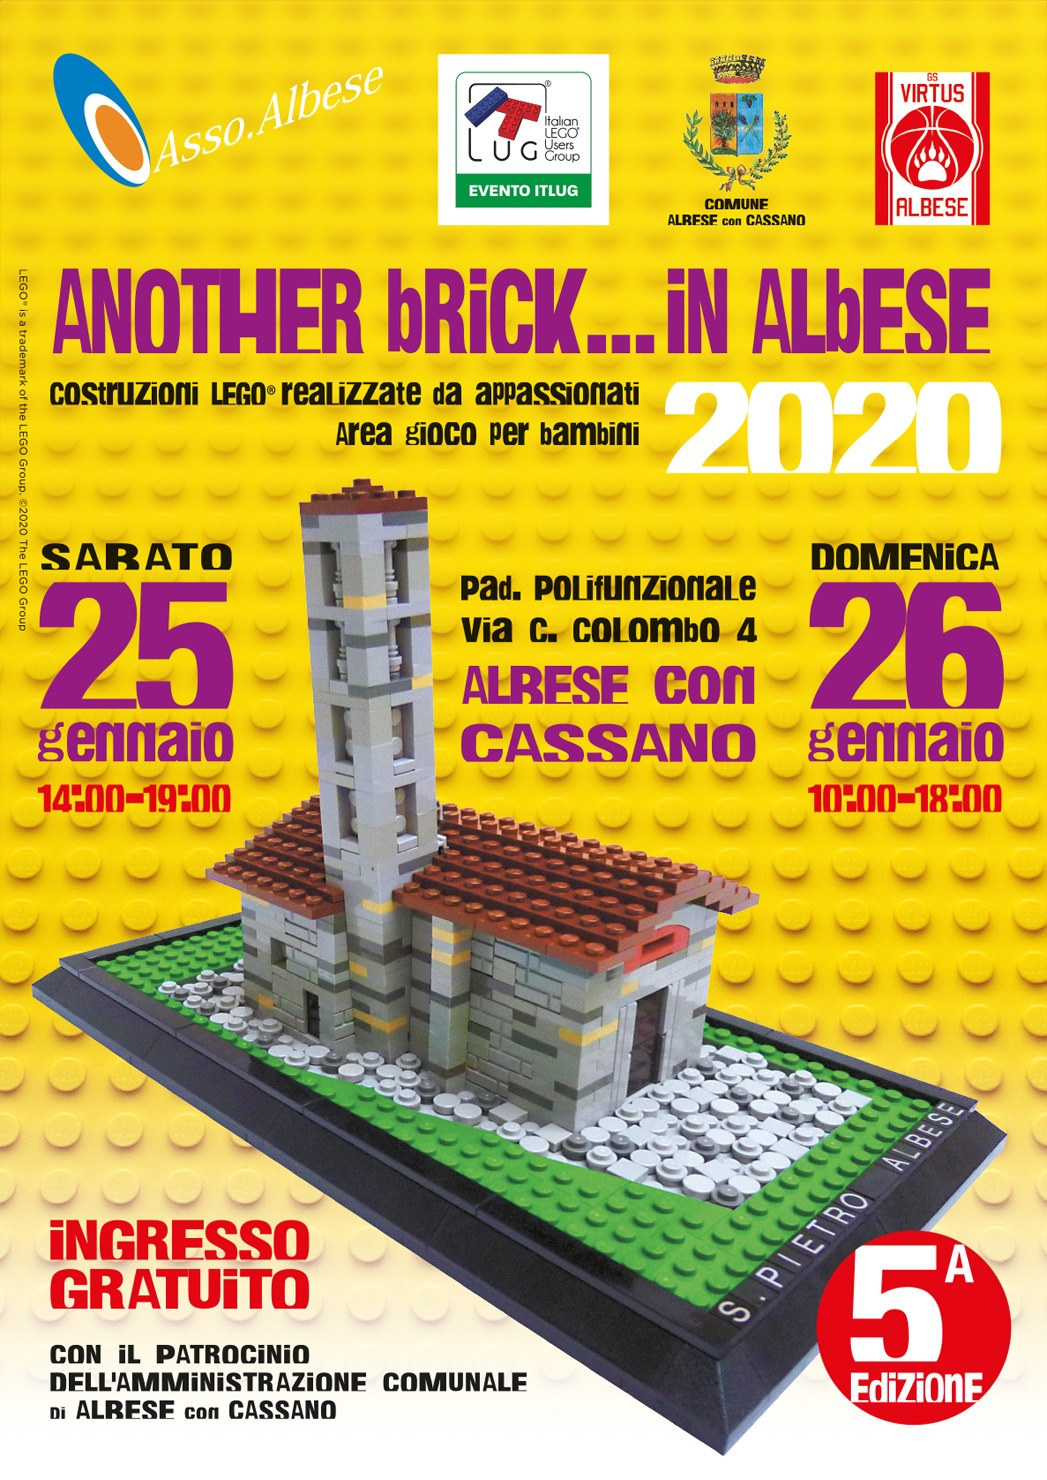 Another Brick in... Albese - ItLUG Albese 2020